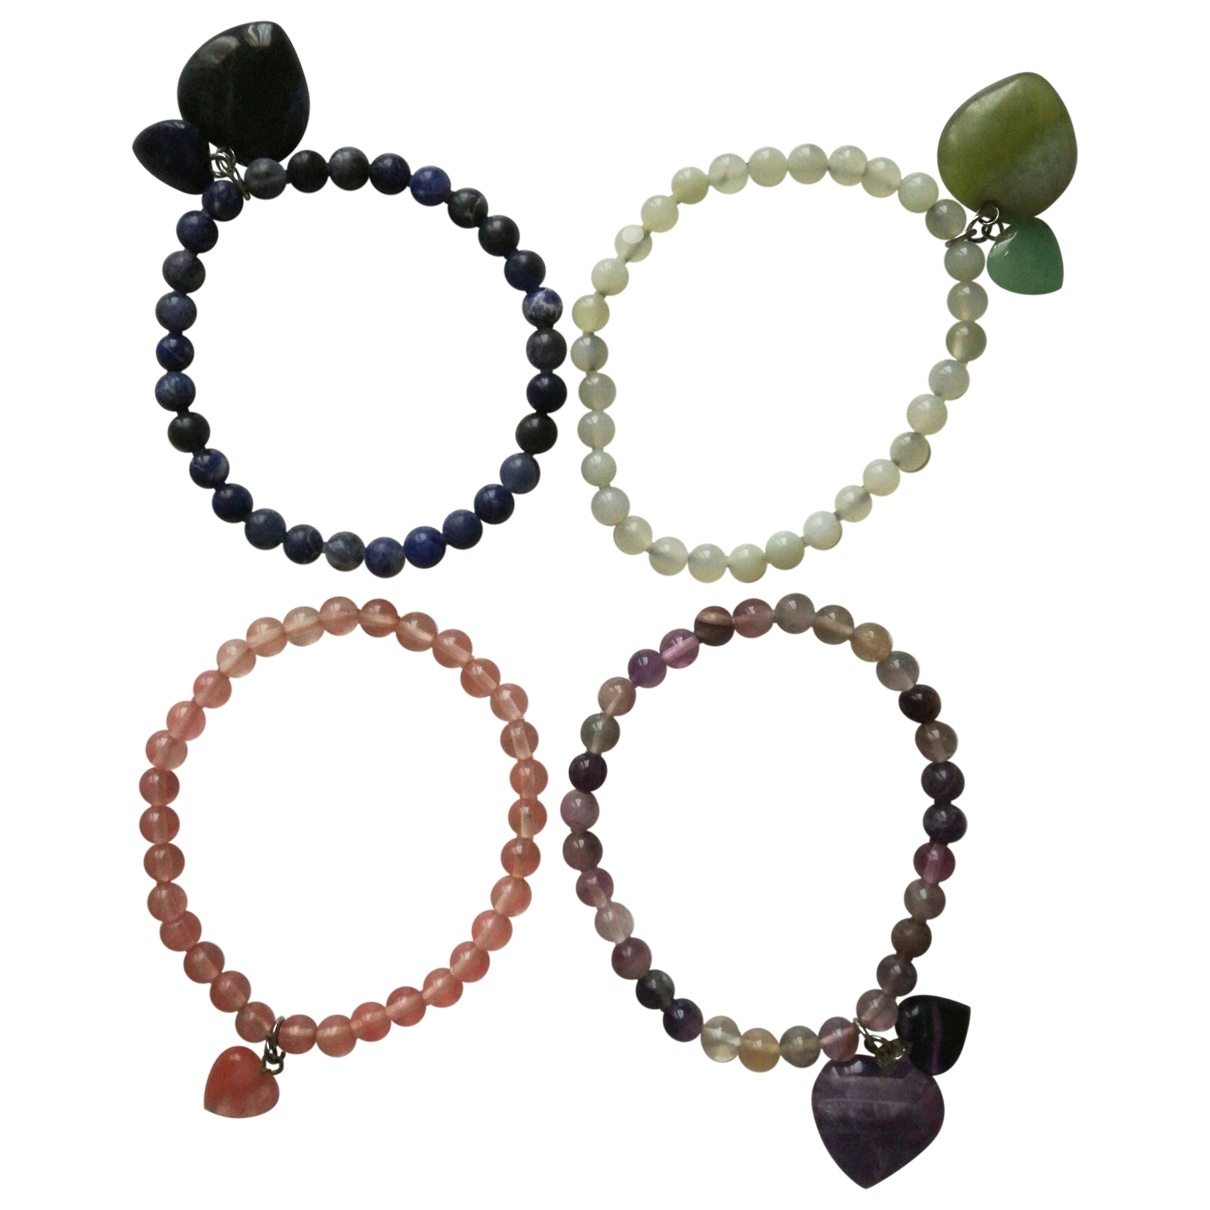 Non Signe / Unsigned Motifs Coeurs Armband in  Bunt Metall